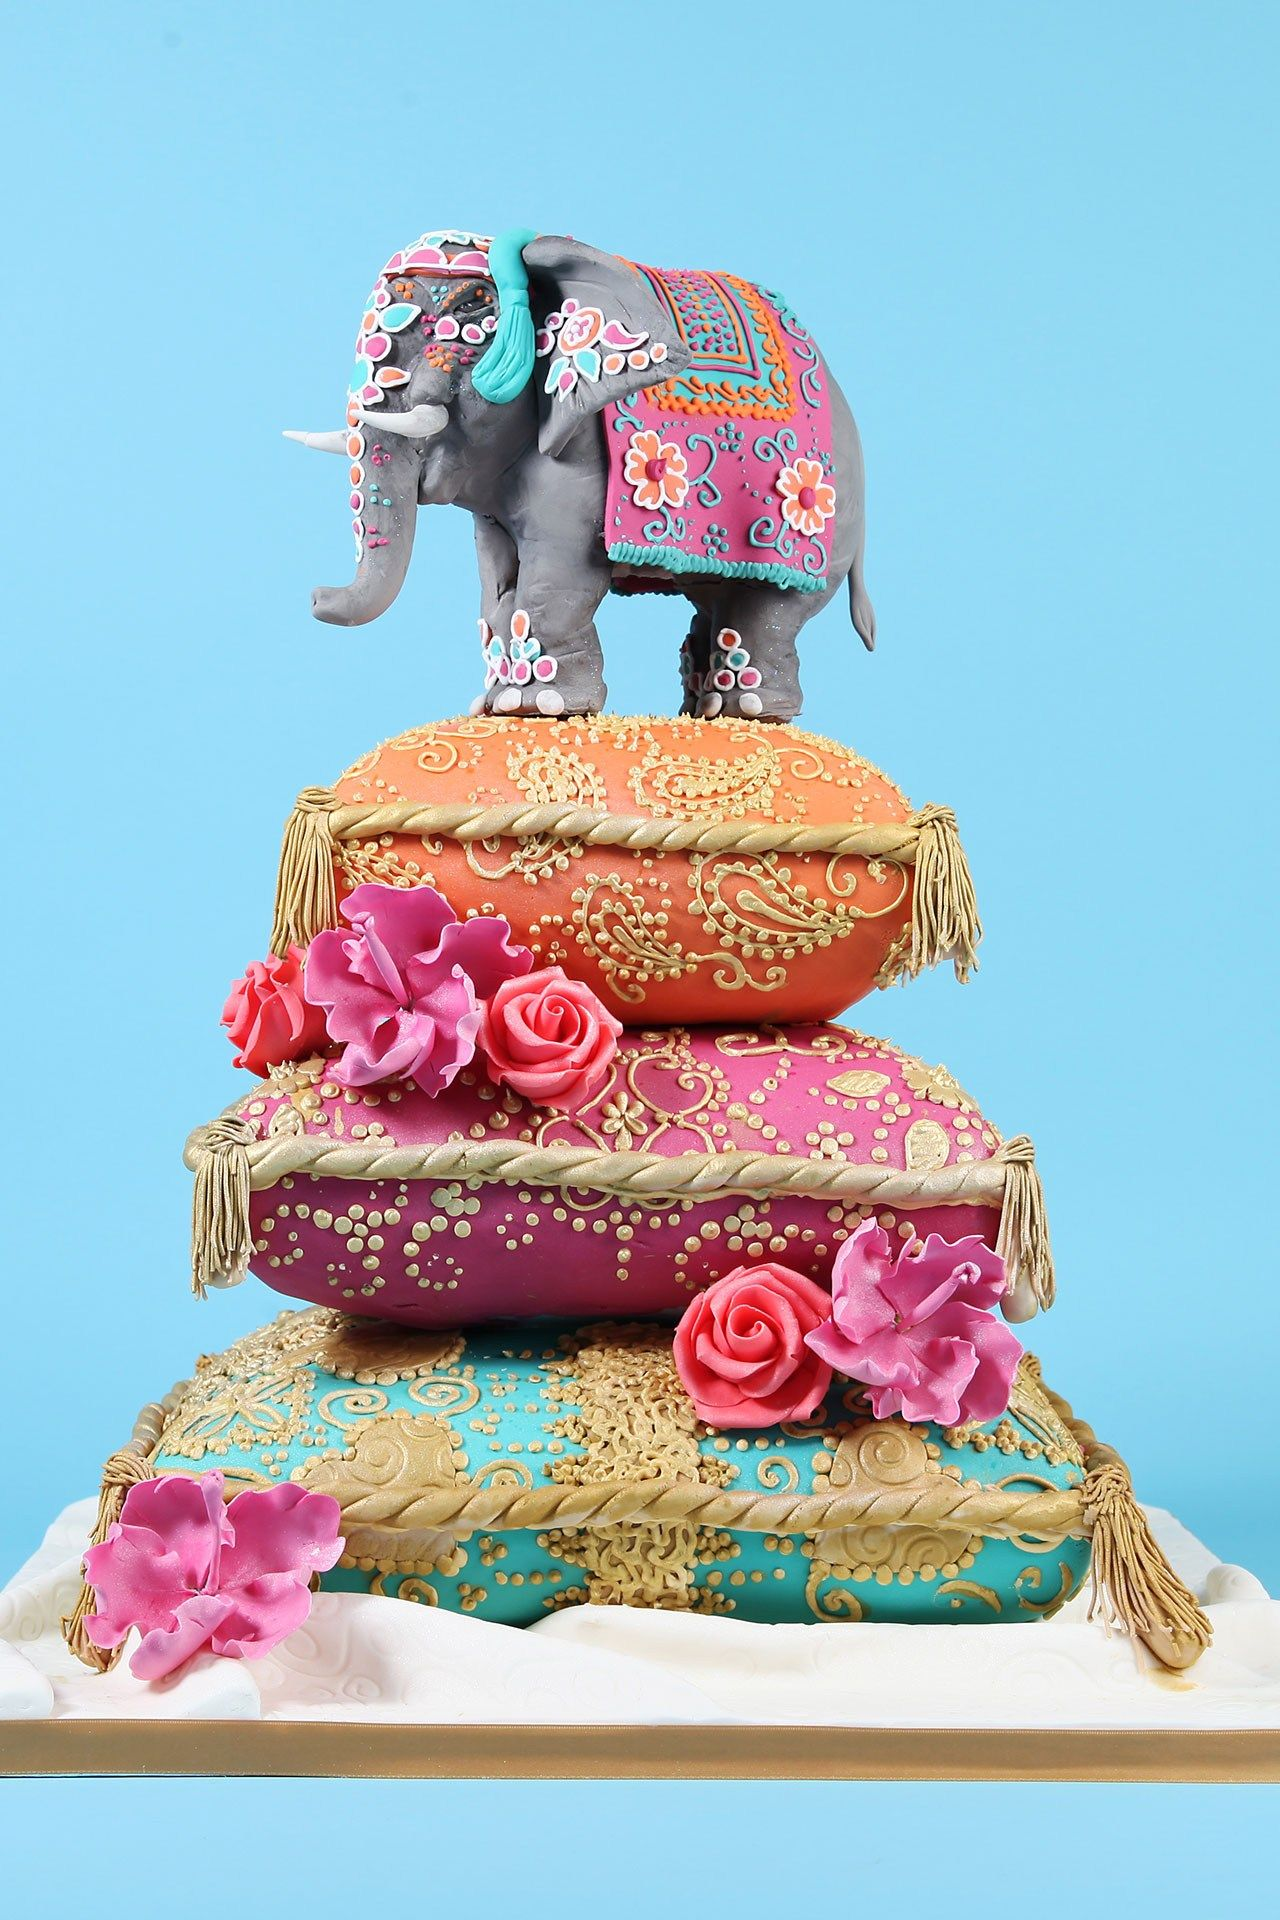 indian wedding cakes london a slice of wow factor birthday amp ideas 16420